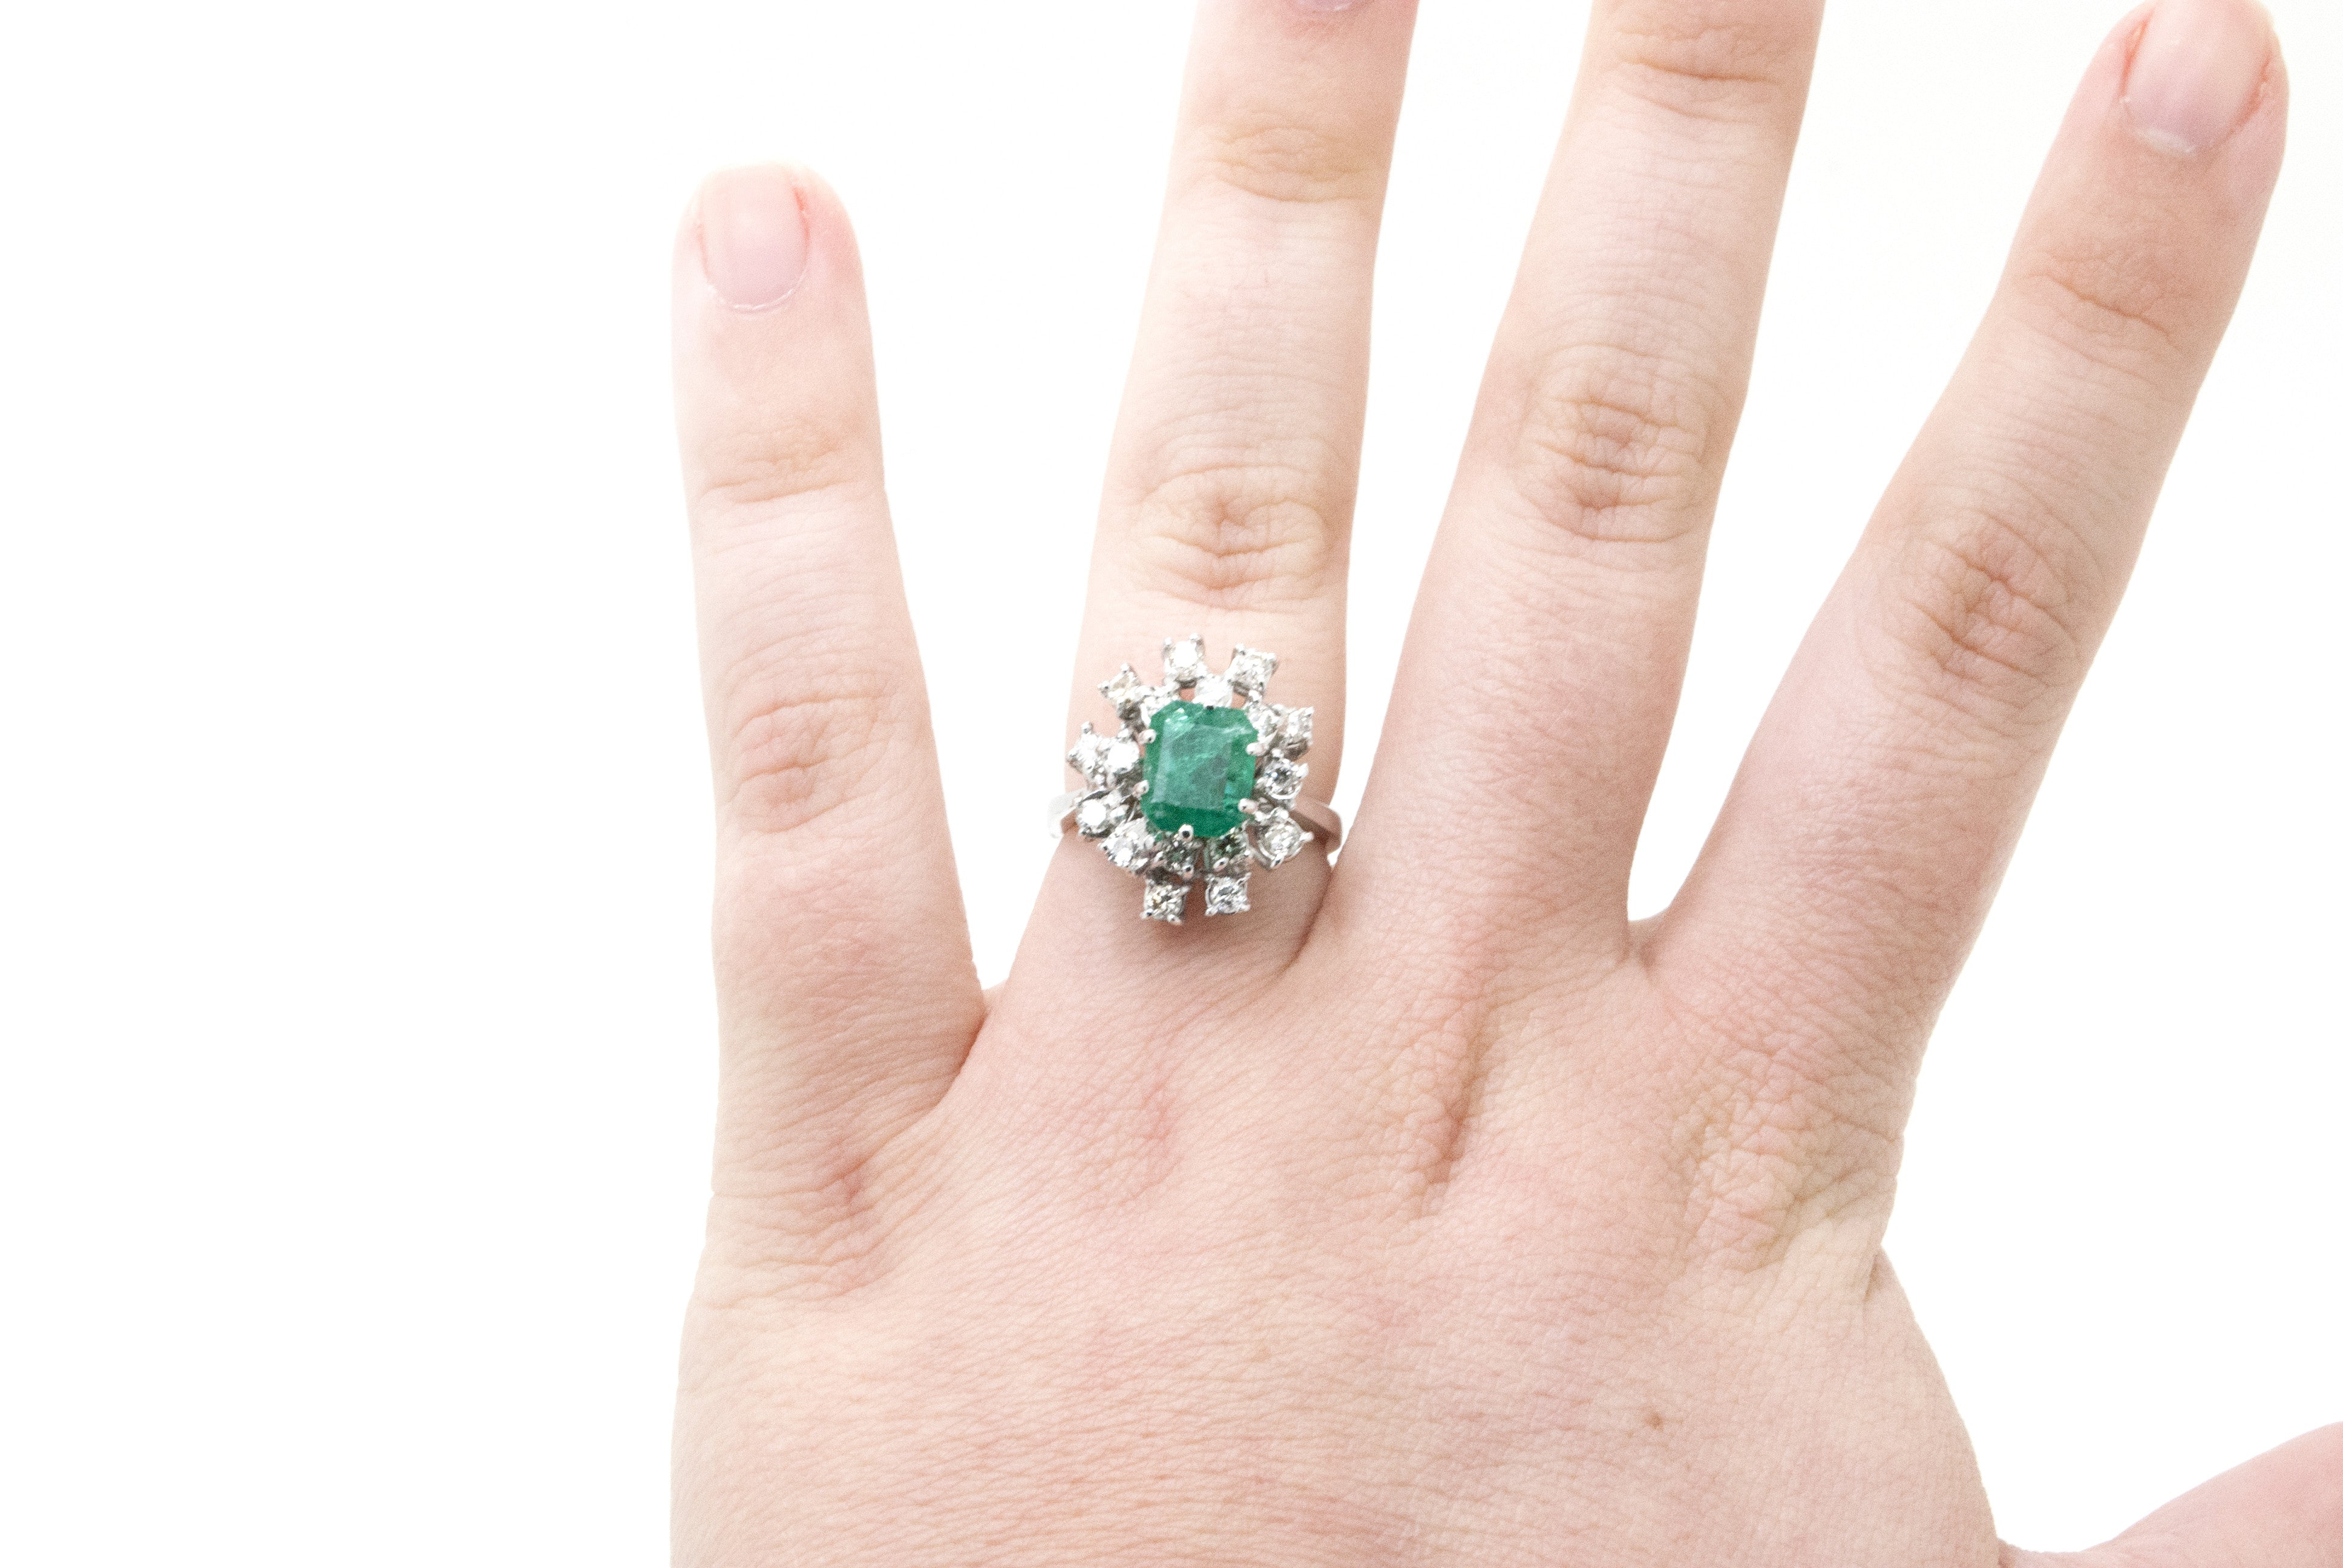 Vintage 18k White Gold Emerald & Diamond Cluster Ring - 3.00 ct. tw ...